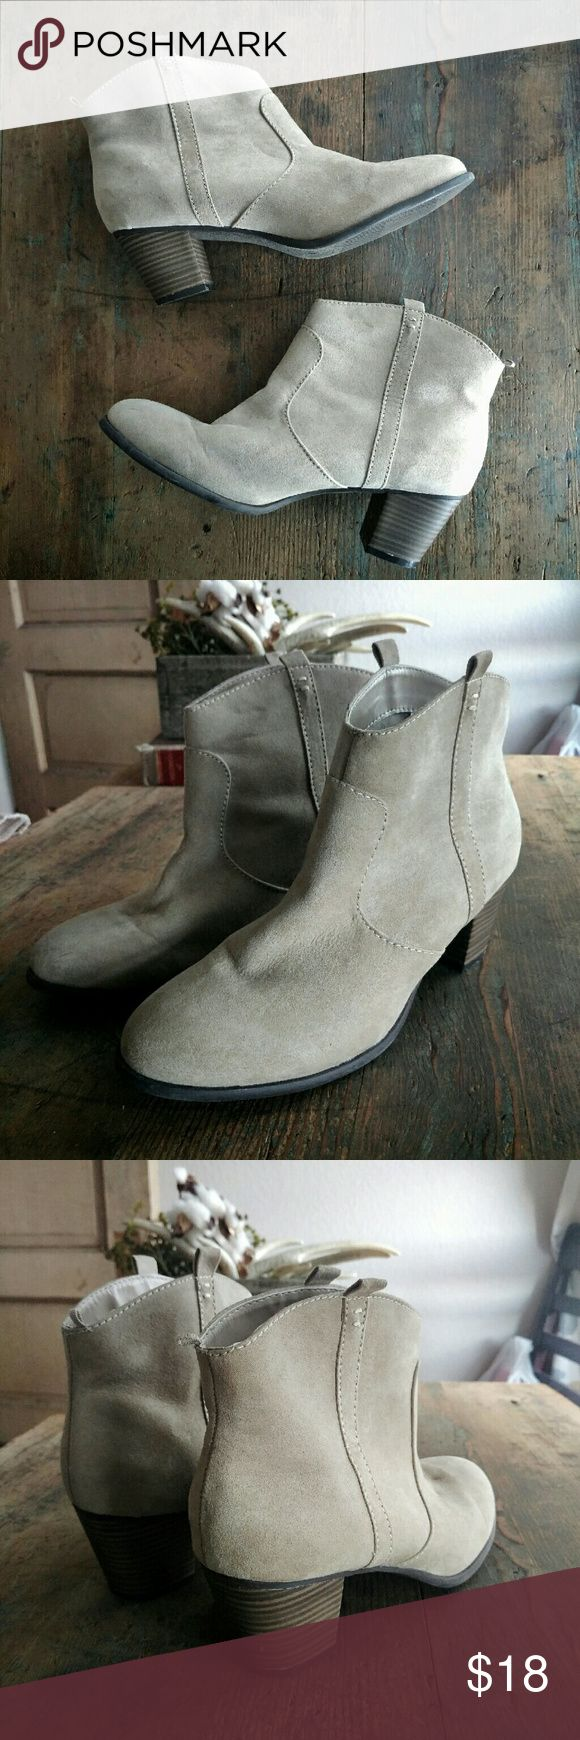 """NWOT Old Navy Ankle Boots Brand new, never worn light beige (not gray, color closest to picture #3), faux suede ankle boots with a wooden heel. Size 9M, heel height 1.35"""". Old Navy Shoes Ankle Boots & Booties"""